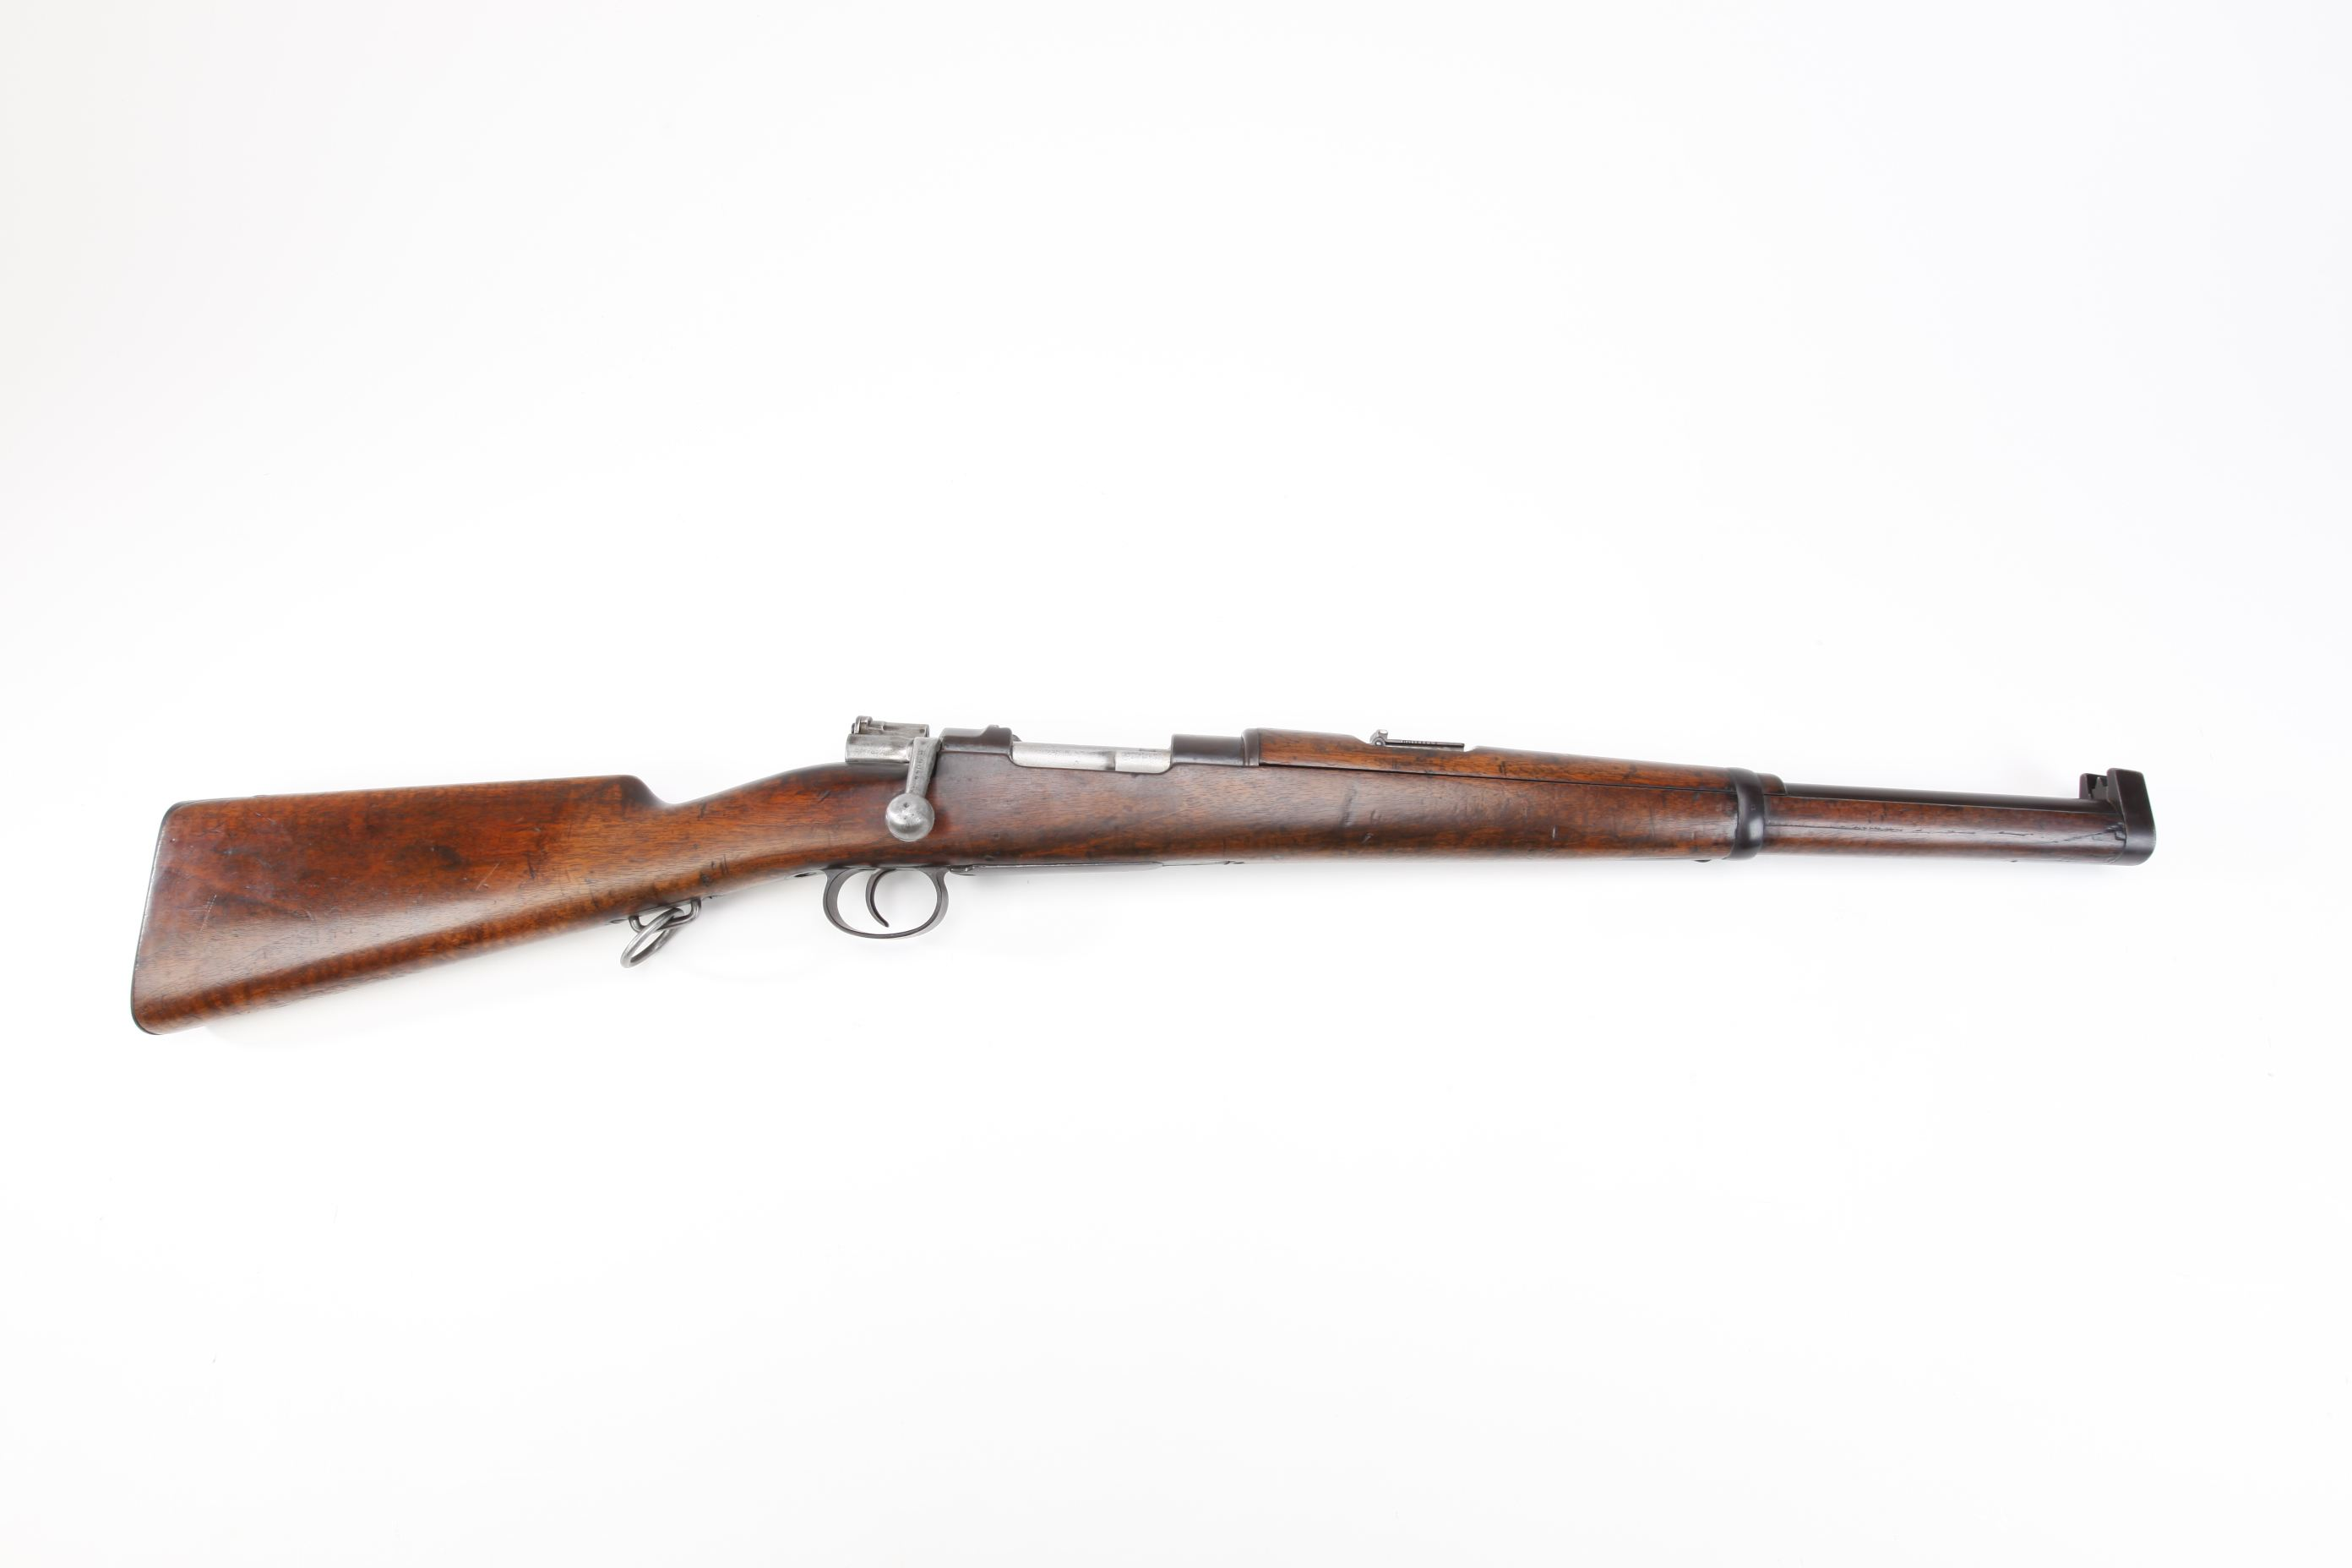 Ludwig Loewe Waffenfabrik Model 1895 Spanish Contract Mauser Bolt Action Rifle